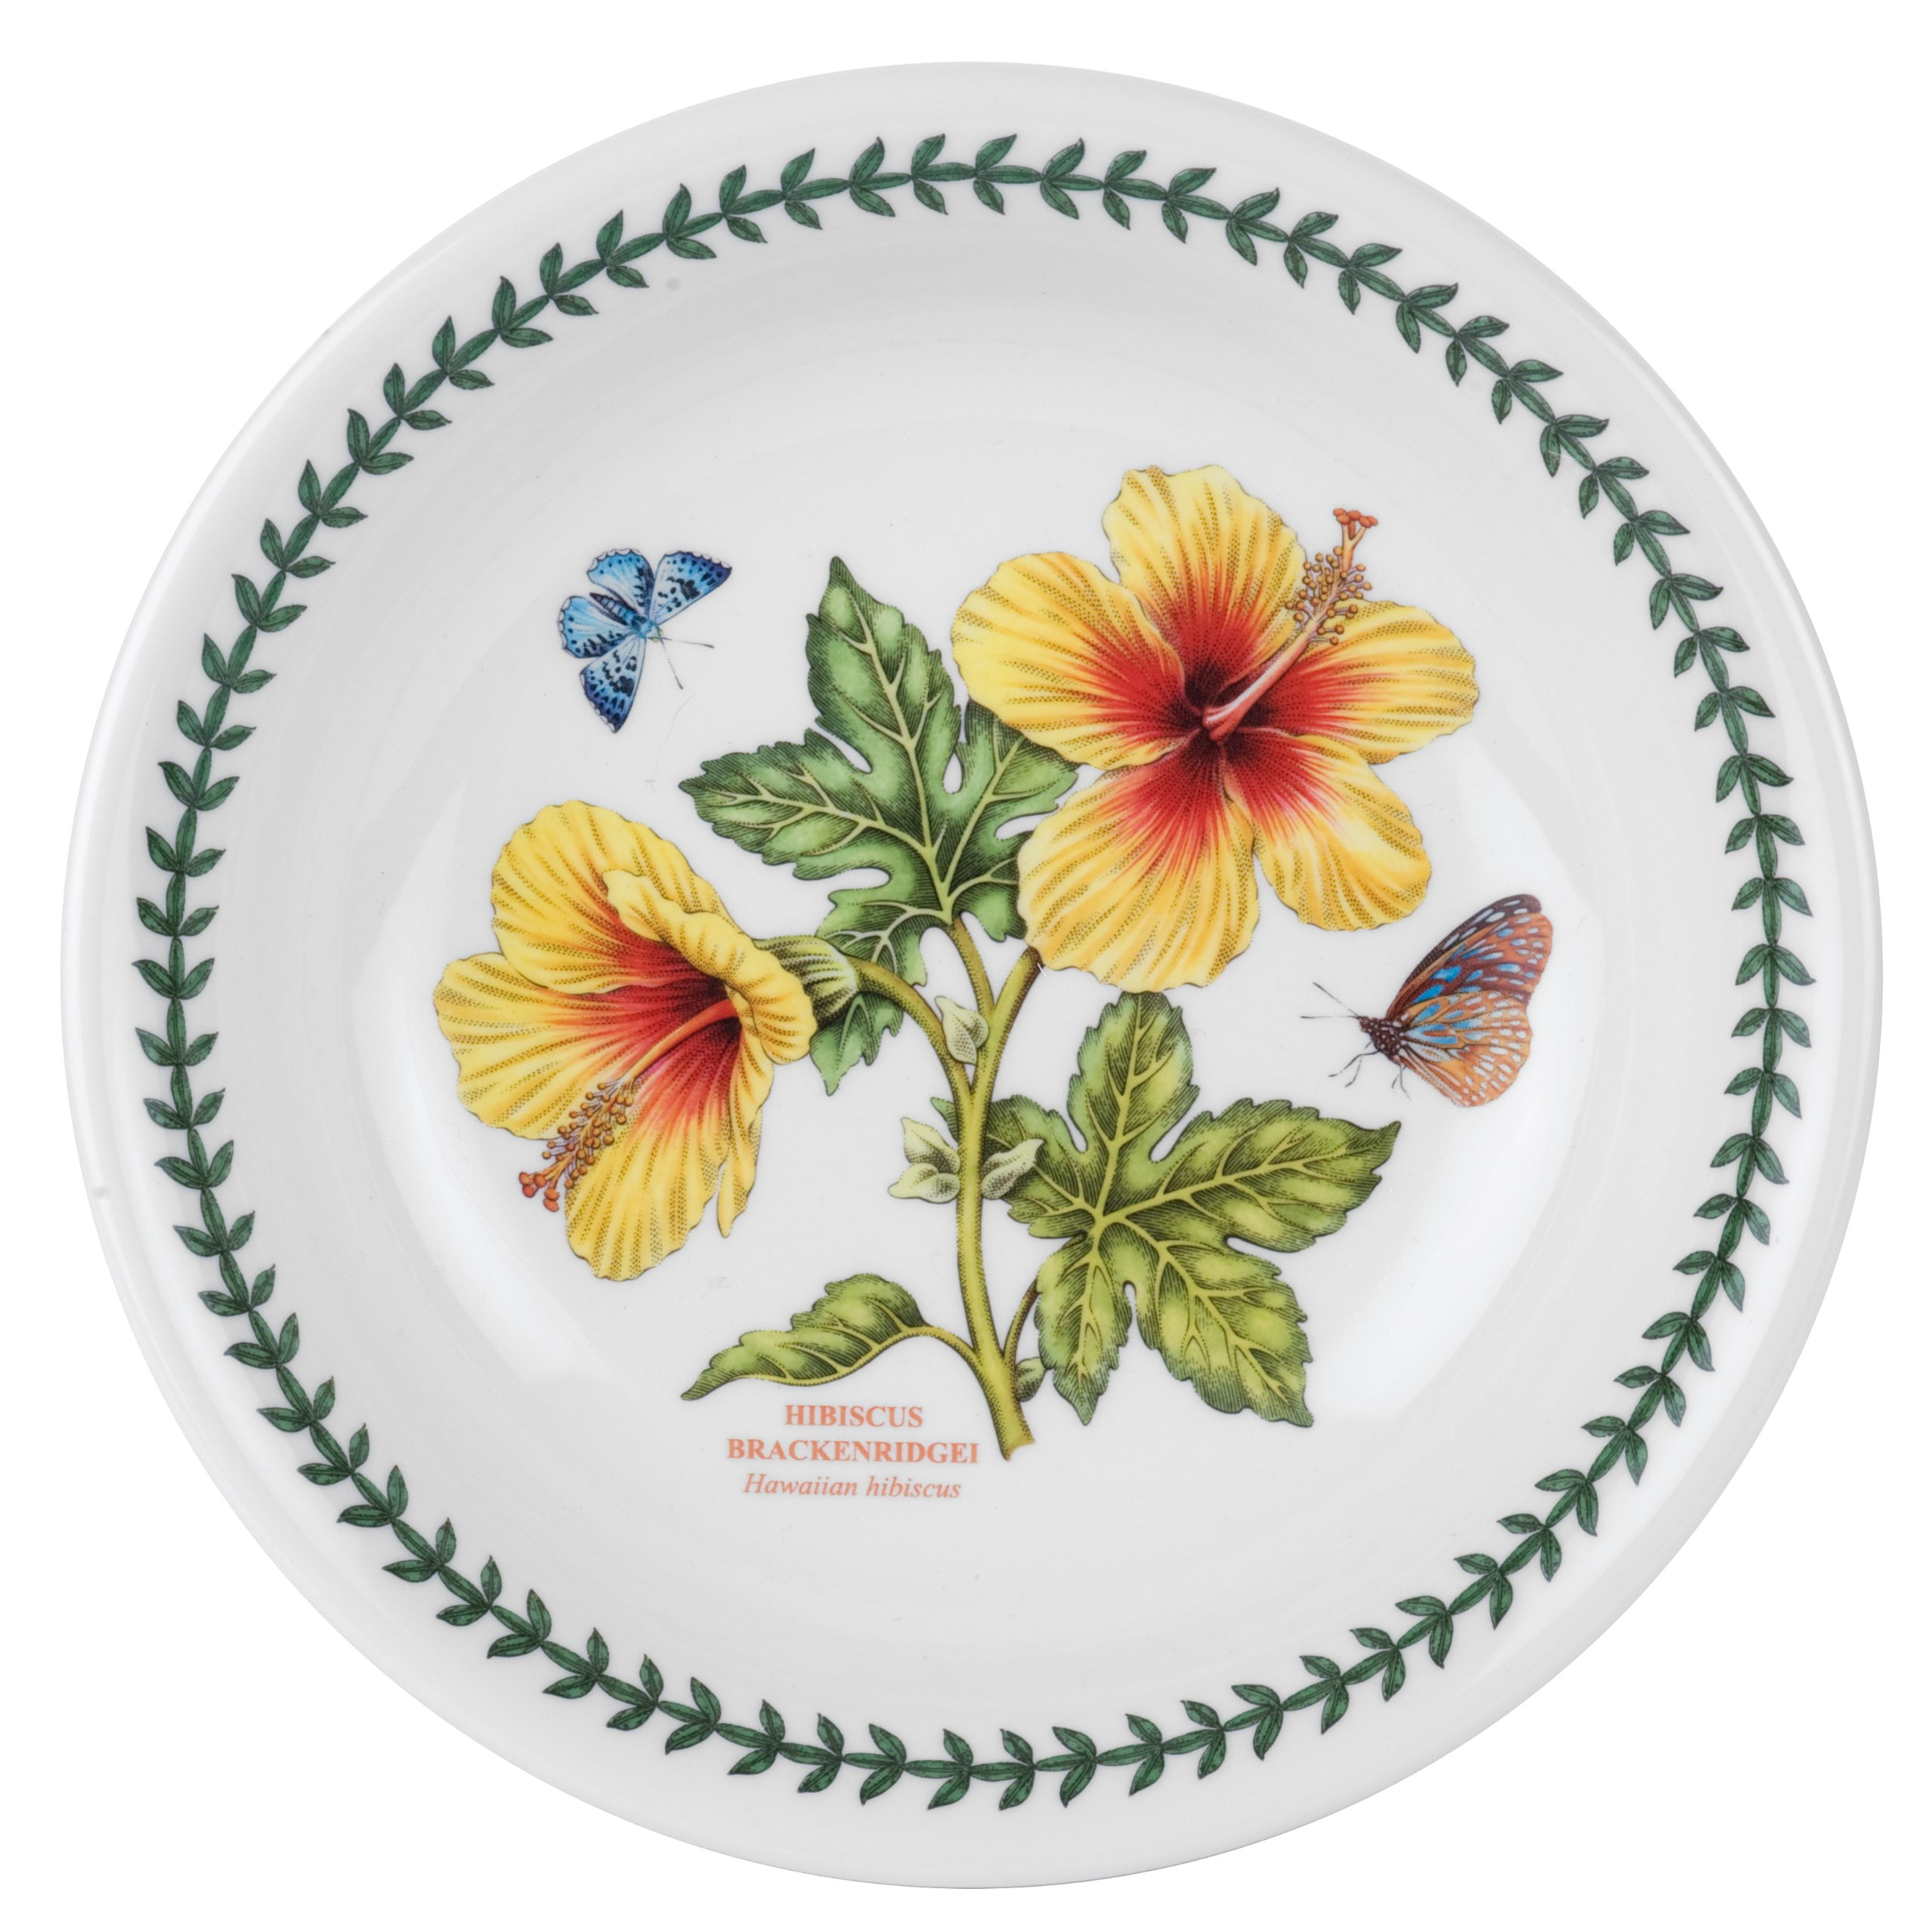 Portmeirion Exotic Botanic Garden Pasta Bowl with Hibiscus Motif, Set of 6